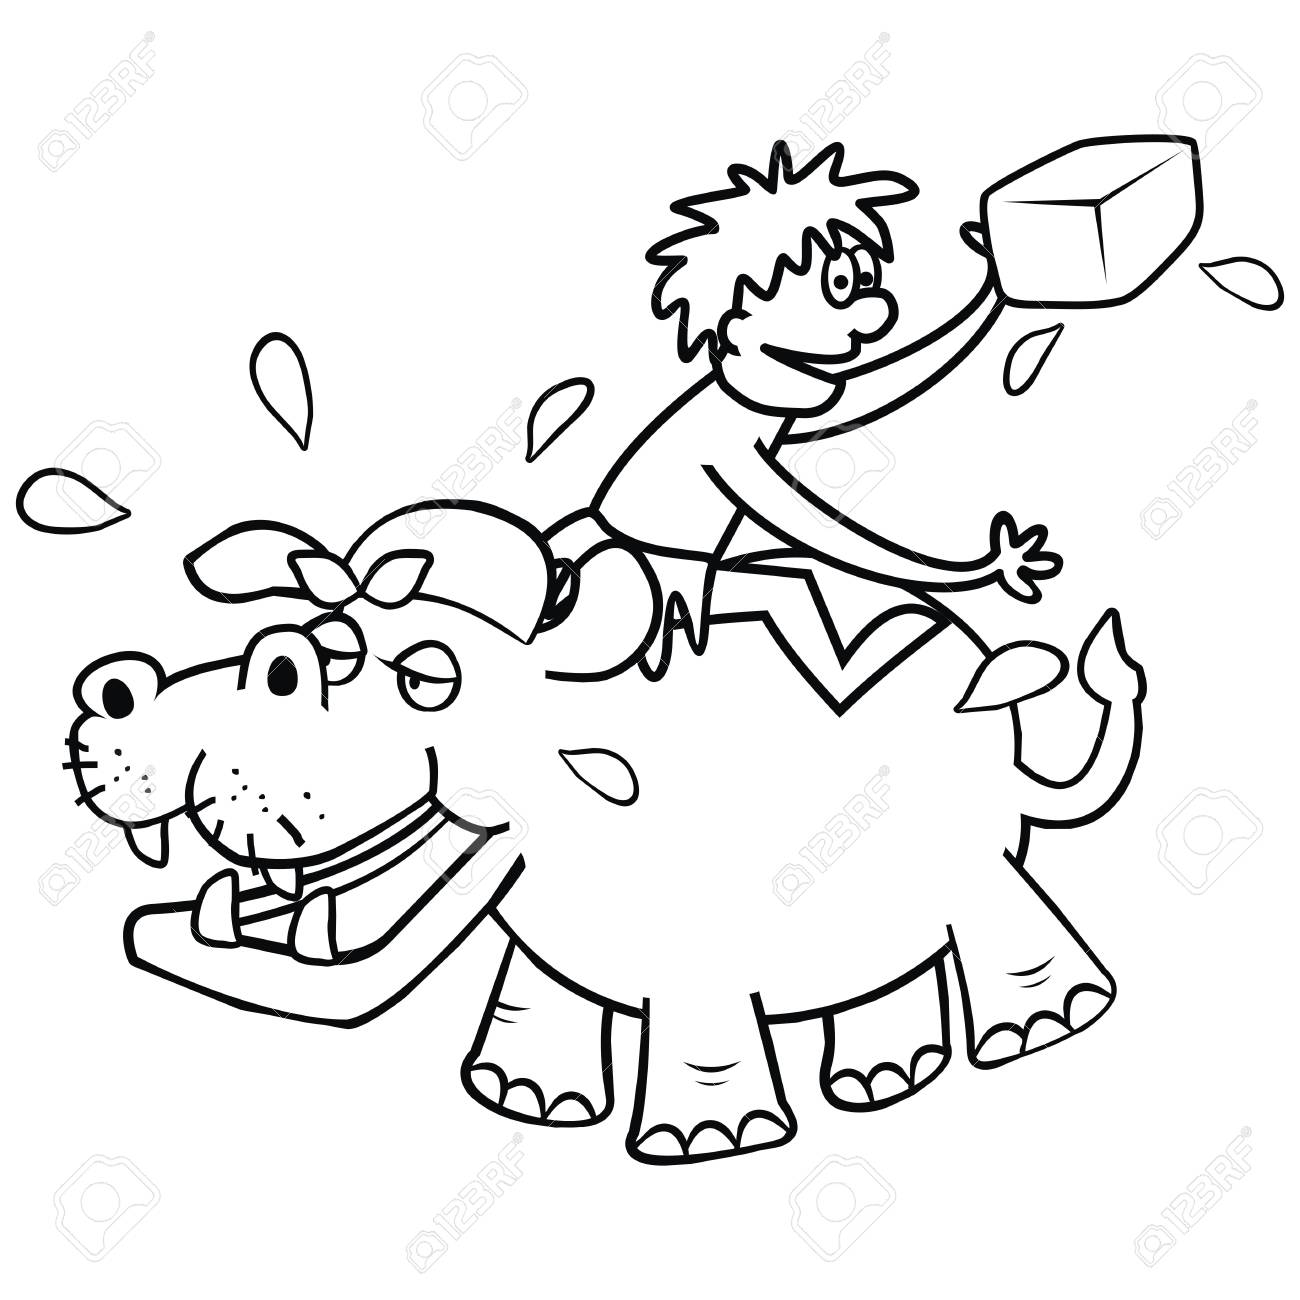 Hippo And Veterinary Funny Illustration Coloring Page Royalty